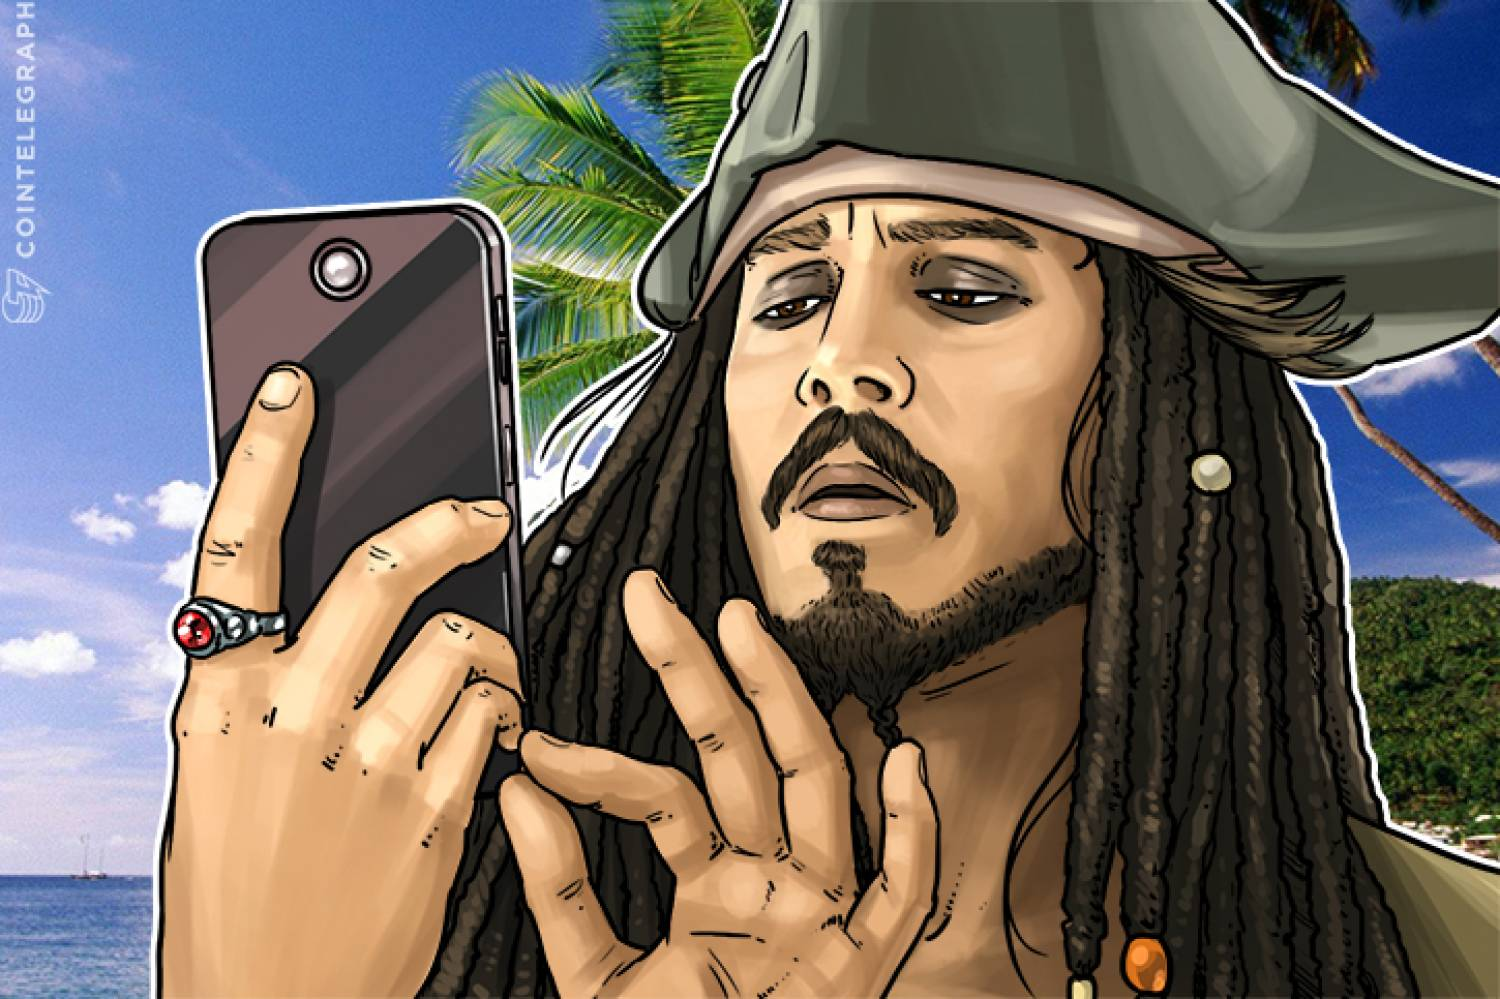 Captain Jack Sparrow uses Lightning Network technology